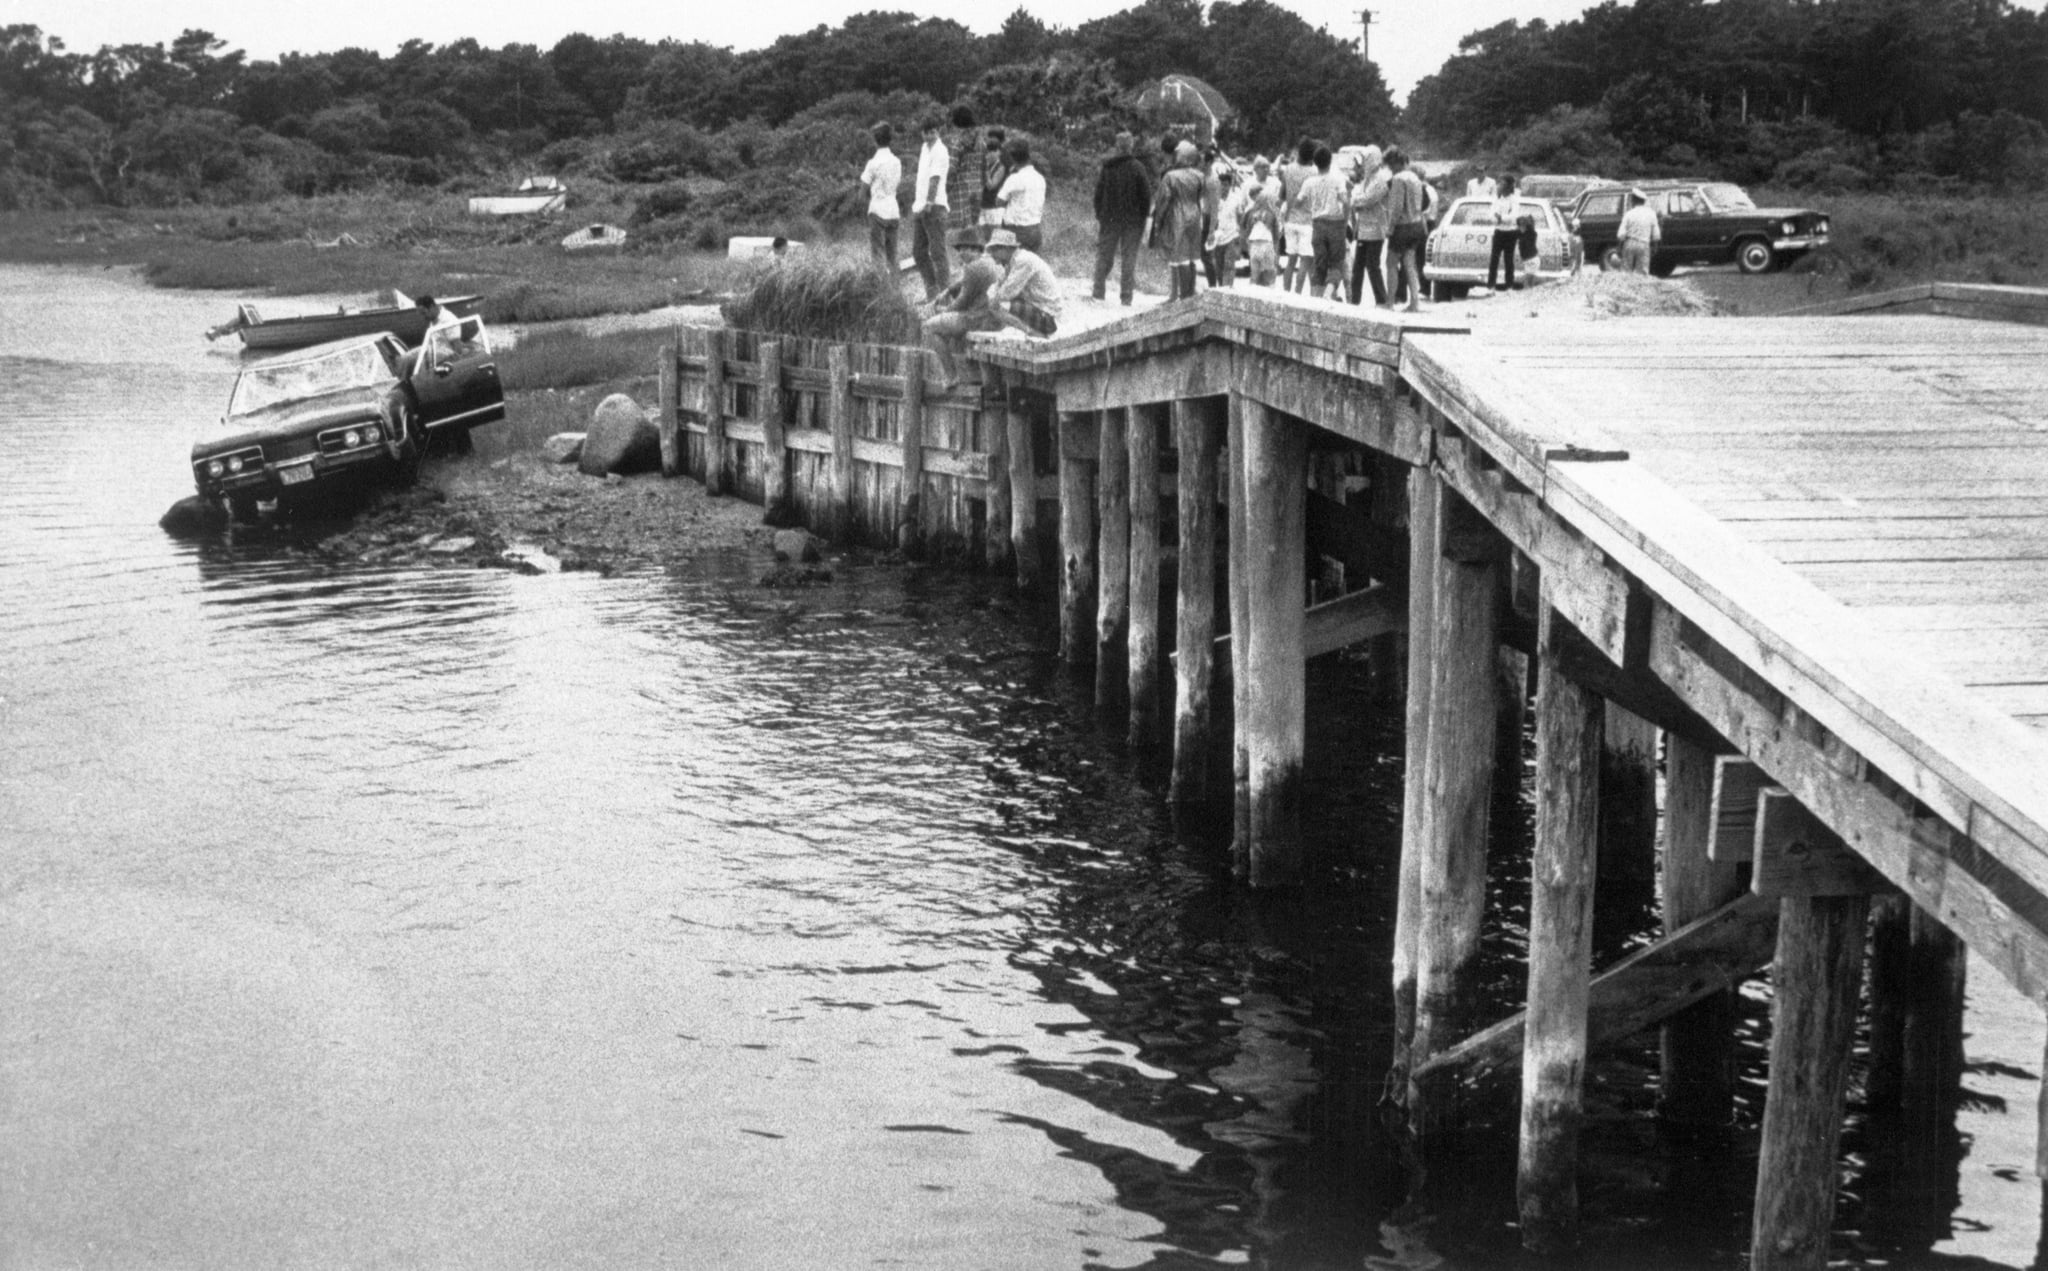 (Original Caption) 7/24/1969- Edgartown, MA- Curious spectators look on from pier at the car driven by Massachusetts Senator Edward Kennedy which plunged off a bridge on Martha's Vineyard on July 19th. Kennedy escaped from the crash in which Miss Mary Jo Kopechne, 29, of Washington, DC, was killed. She had worked as a secretary to the late Senator Robert Kennedy. BPA2#4587.